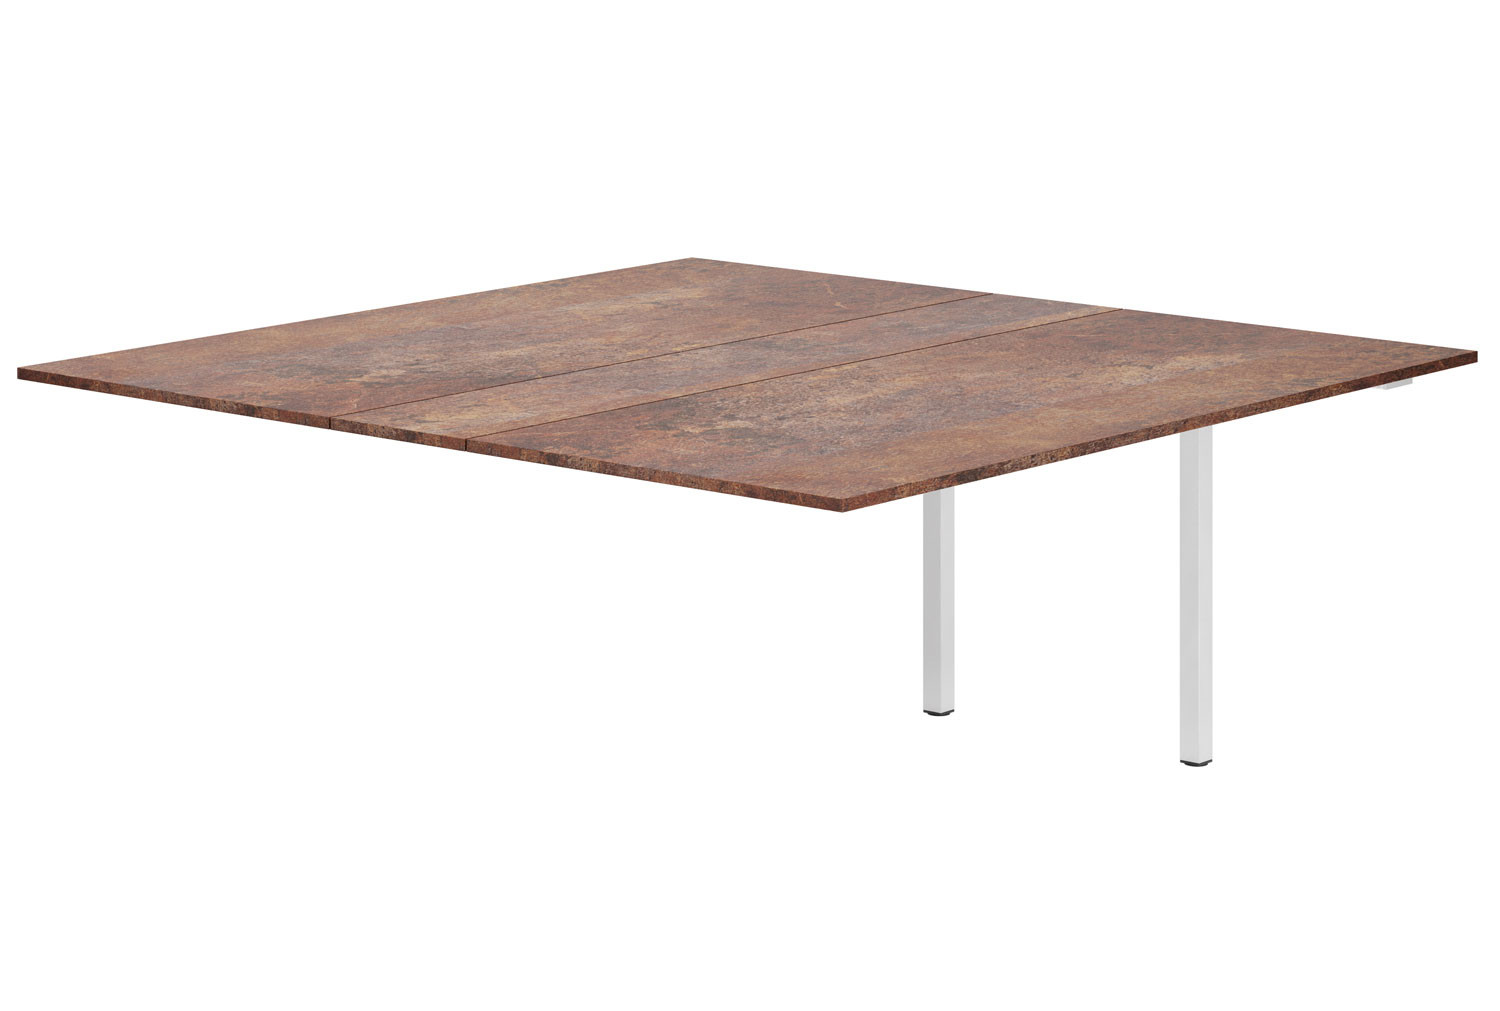 Lasso Meeting Table Add On Unit (Rusted Steel)